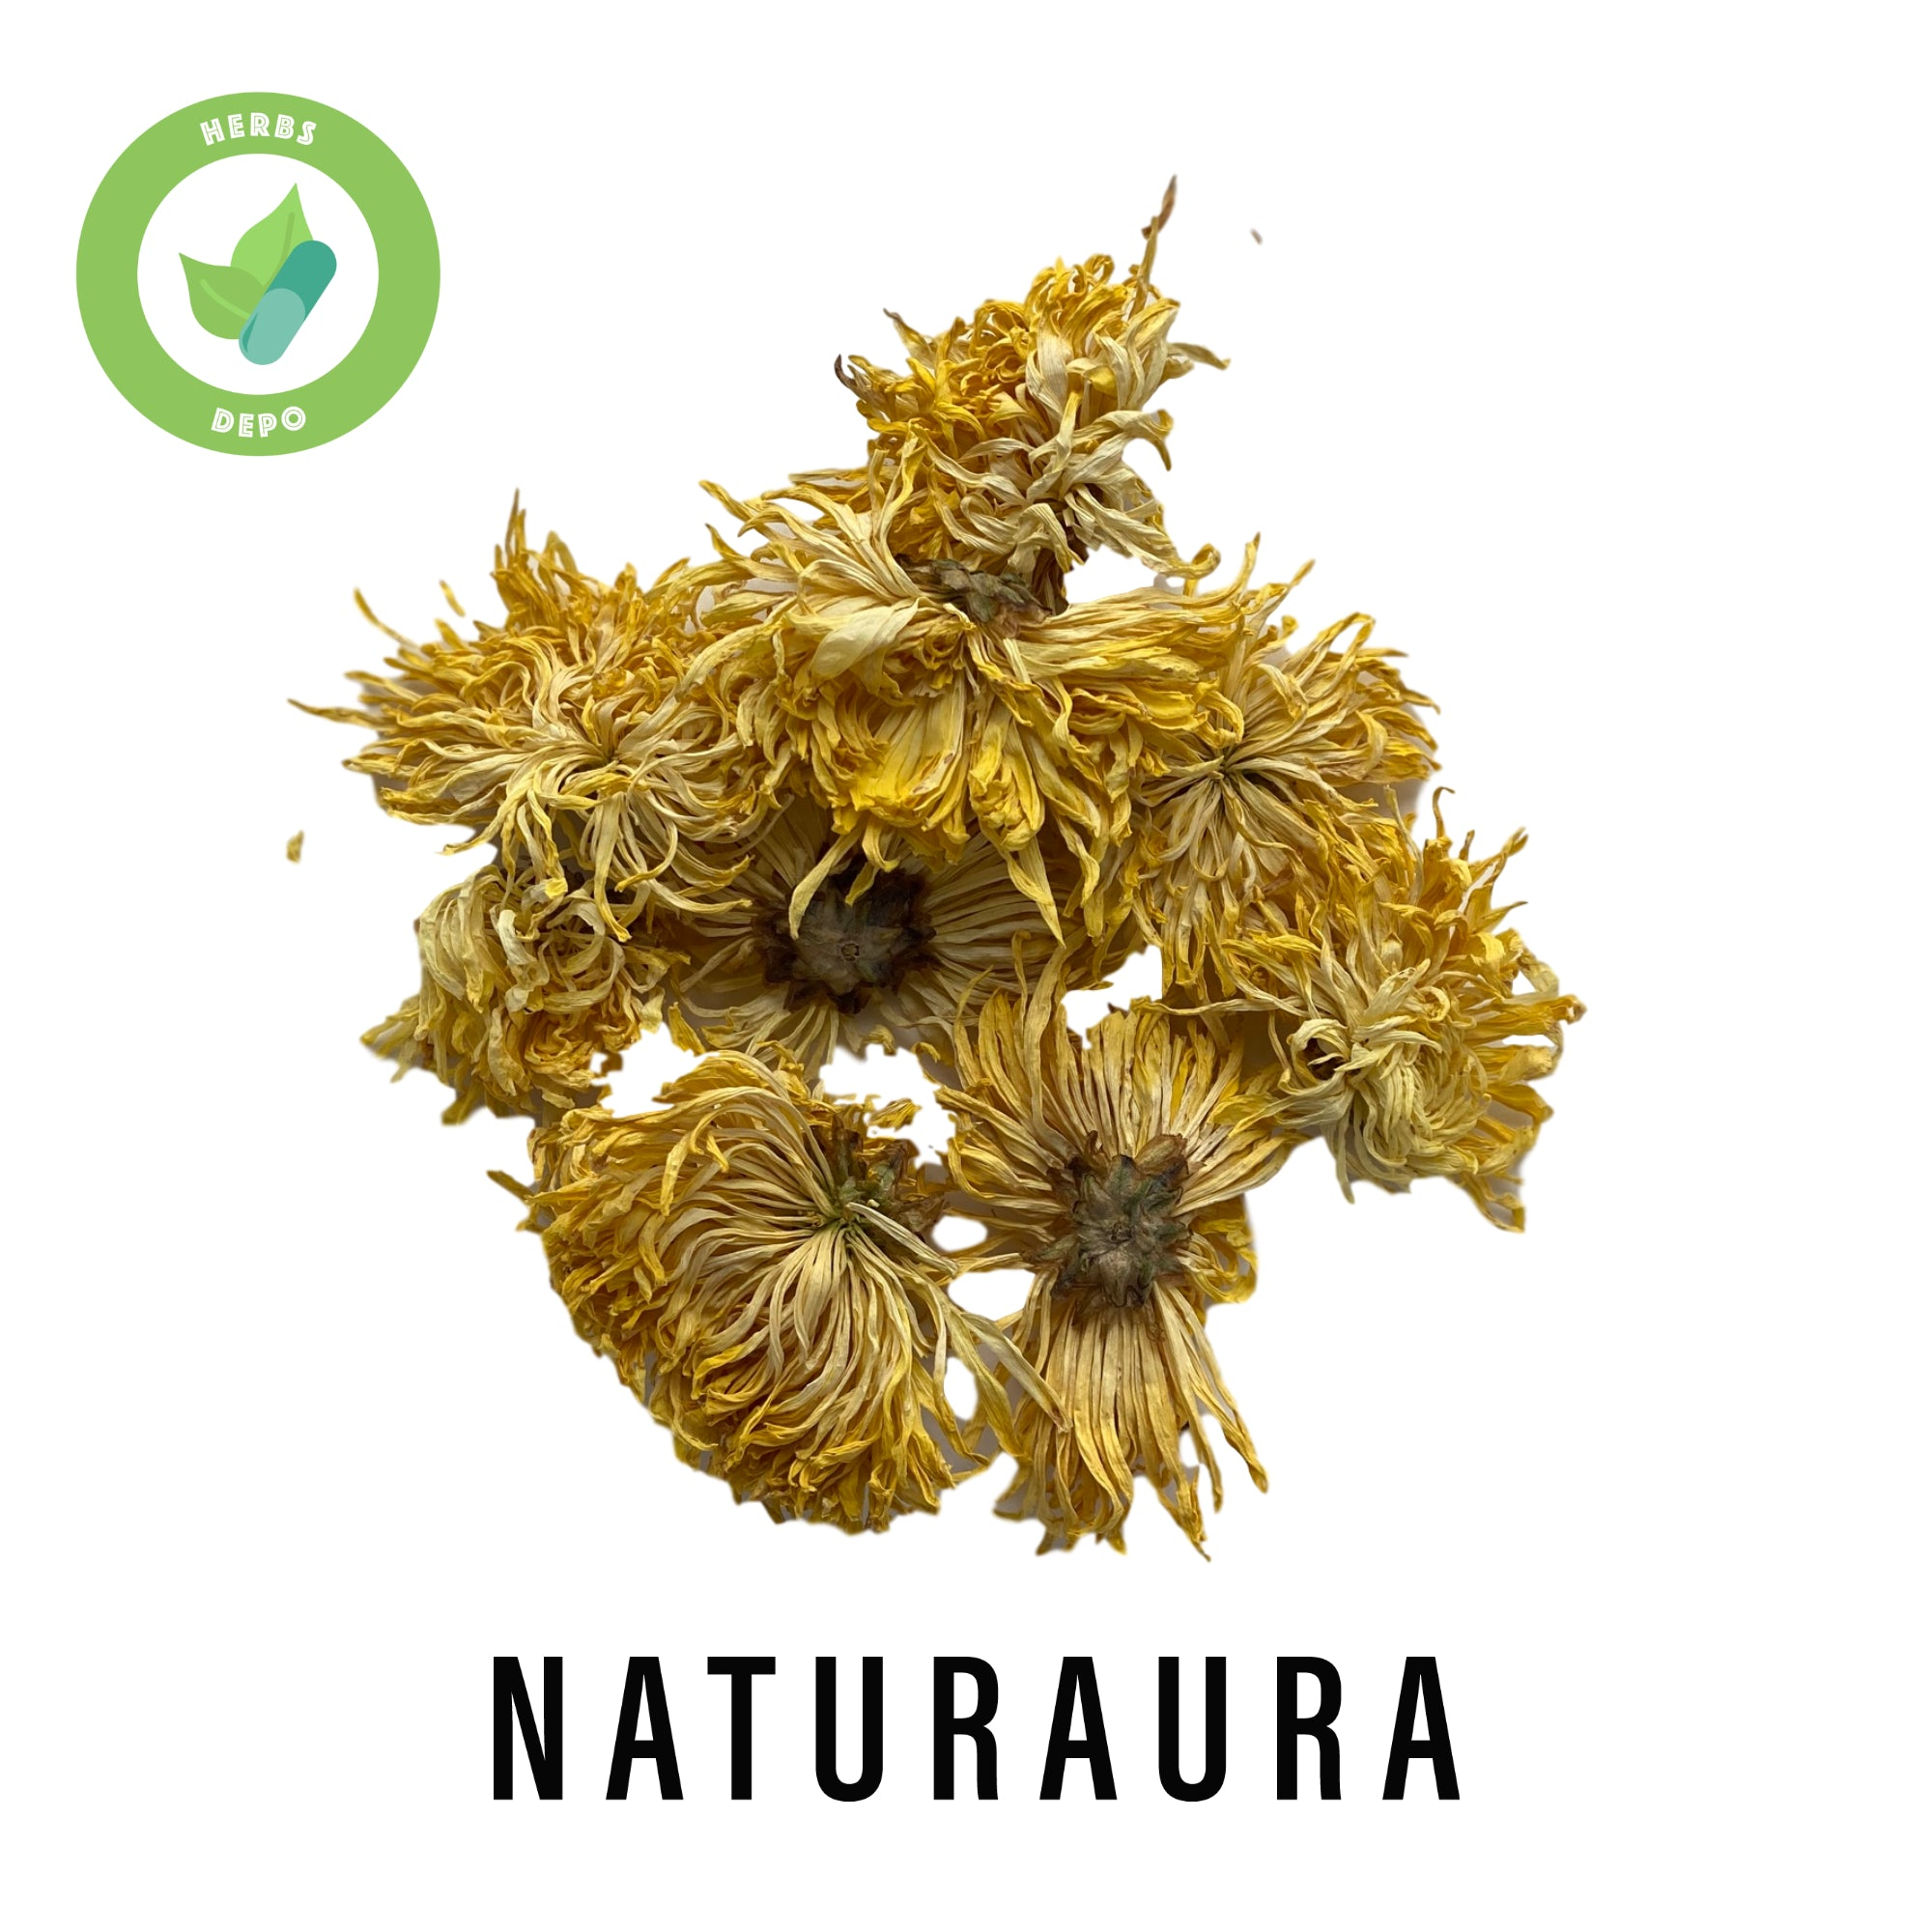 NATURAURA - PREMIUM  DRIED GOLDEN CHRYSANTHEMUM 金絲皇菊 - CHRYSANTHEMUM MORIFOLIUM - Herbs Depo